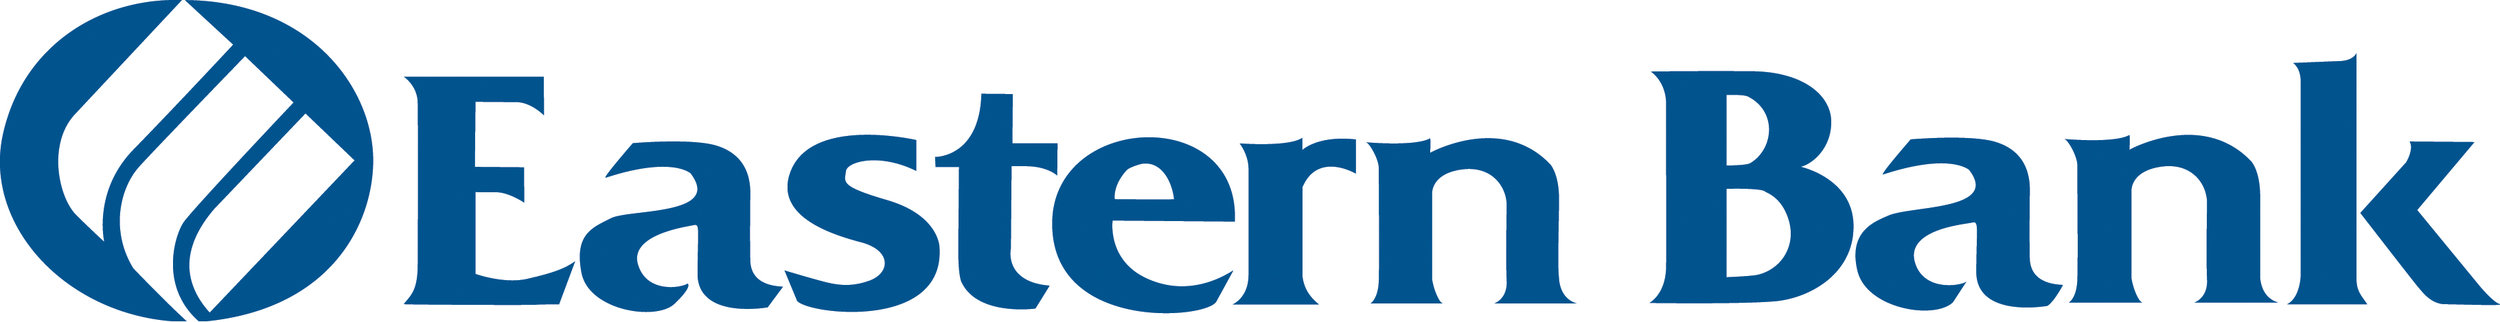 eastern bank logo.jpeg